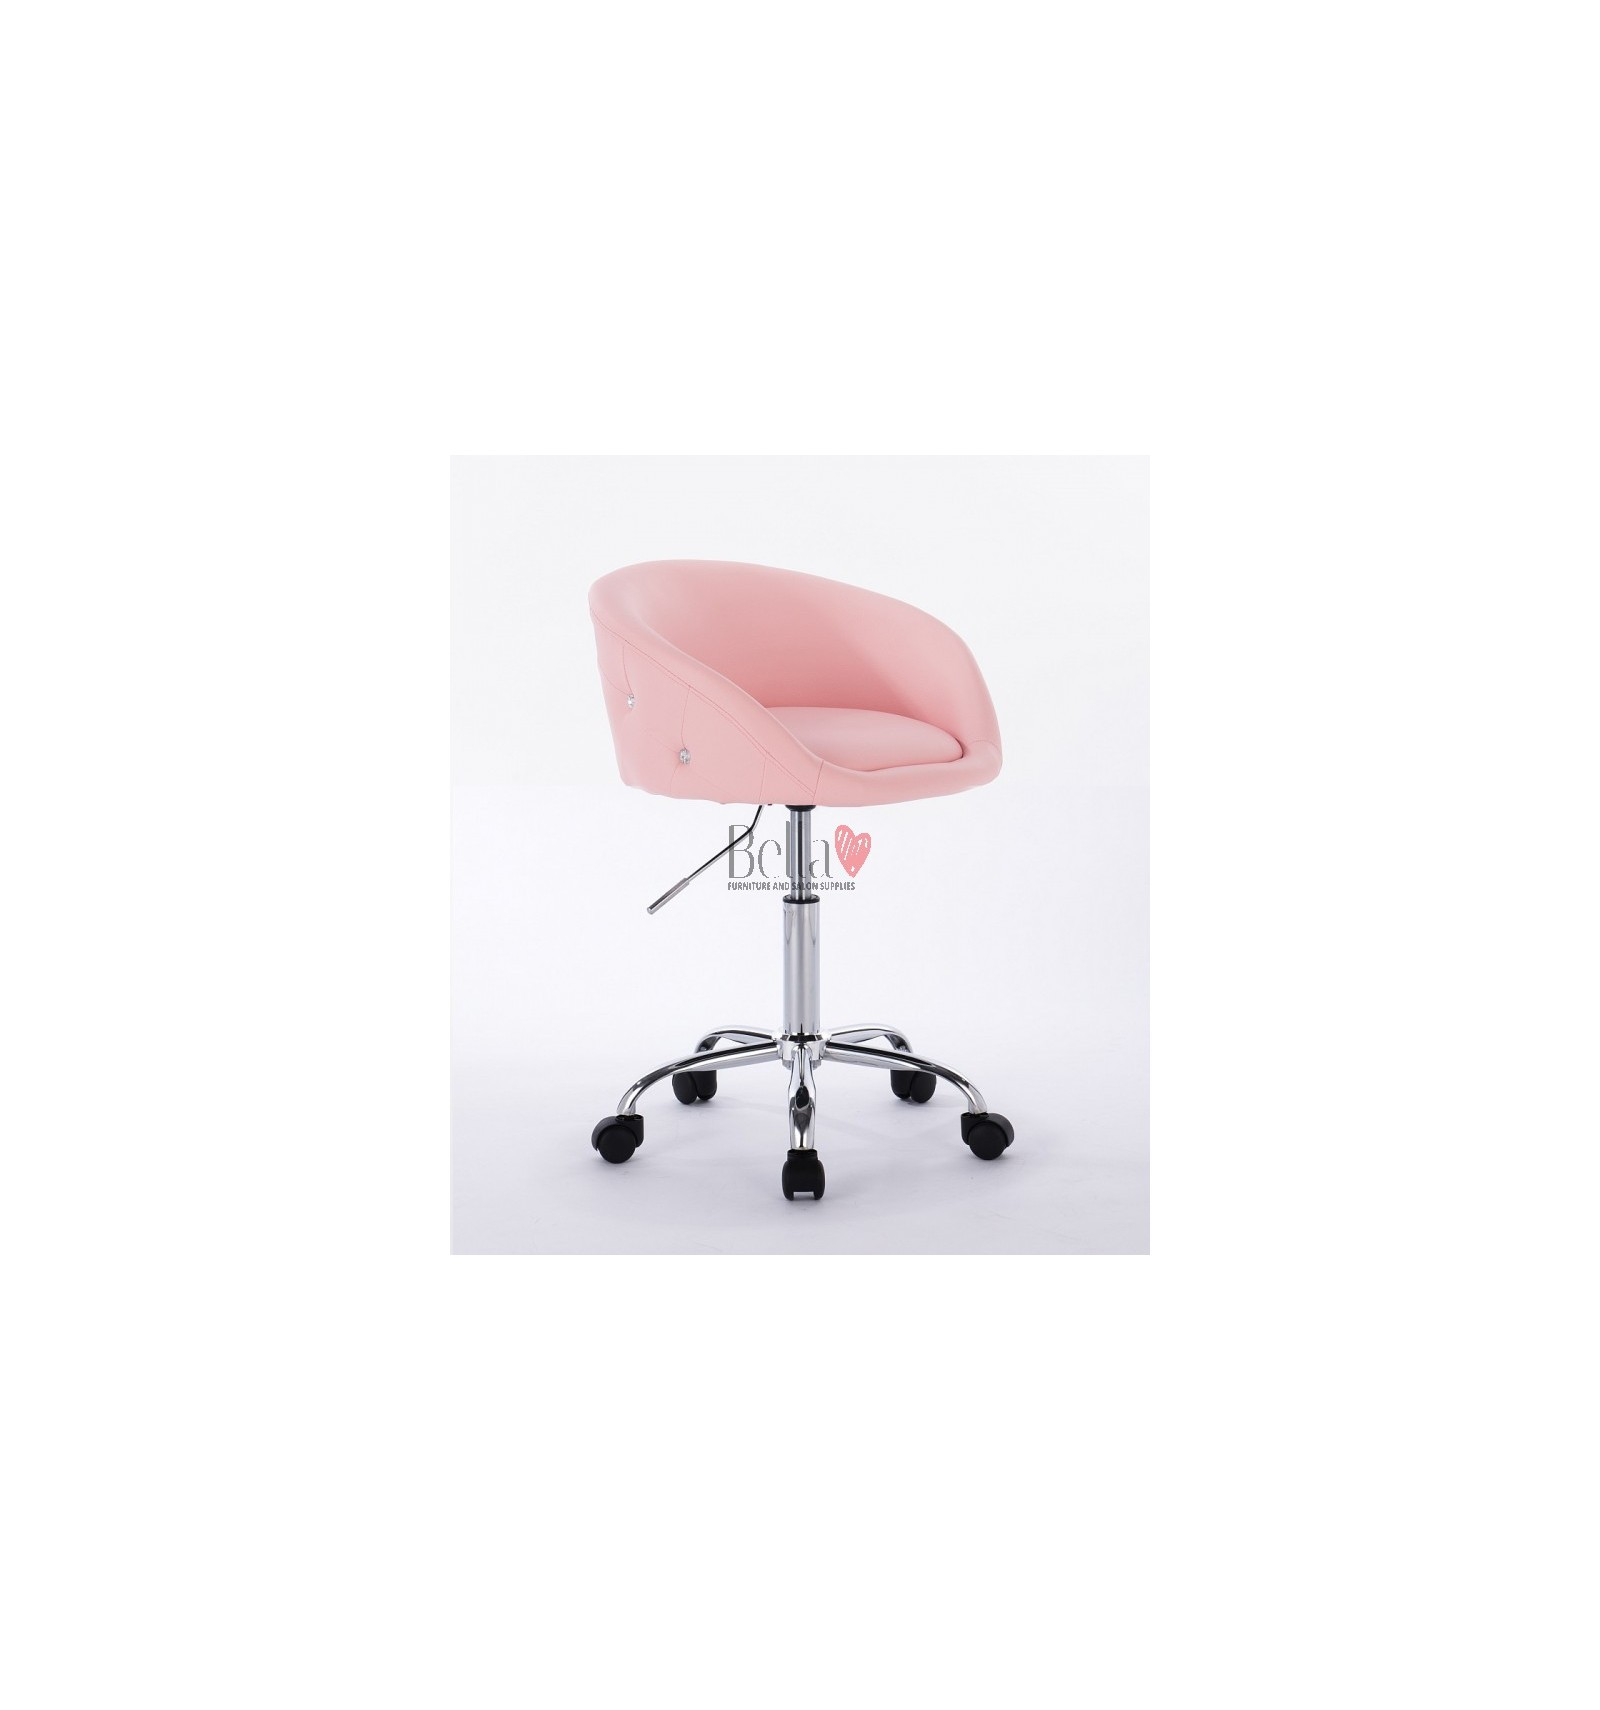 pink nail salon chairs best gaming chair under 200 for beauty and hairdresser dublin ireland